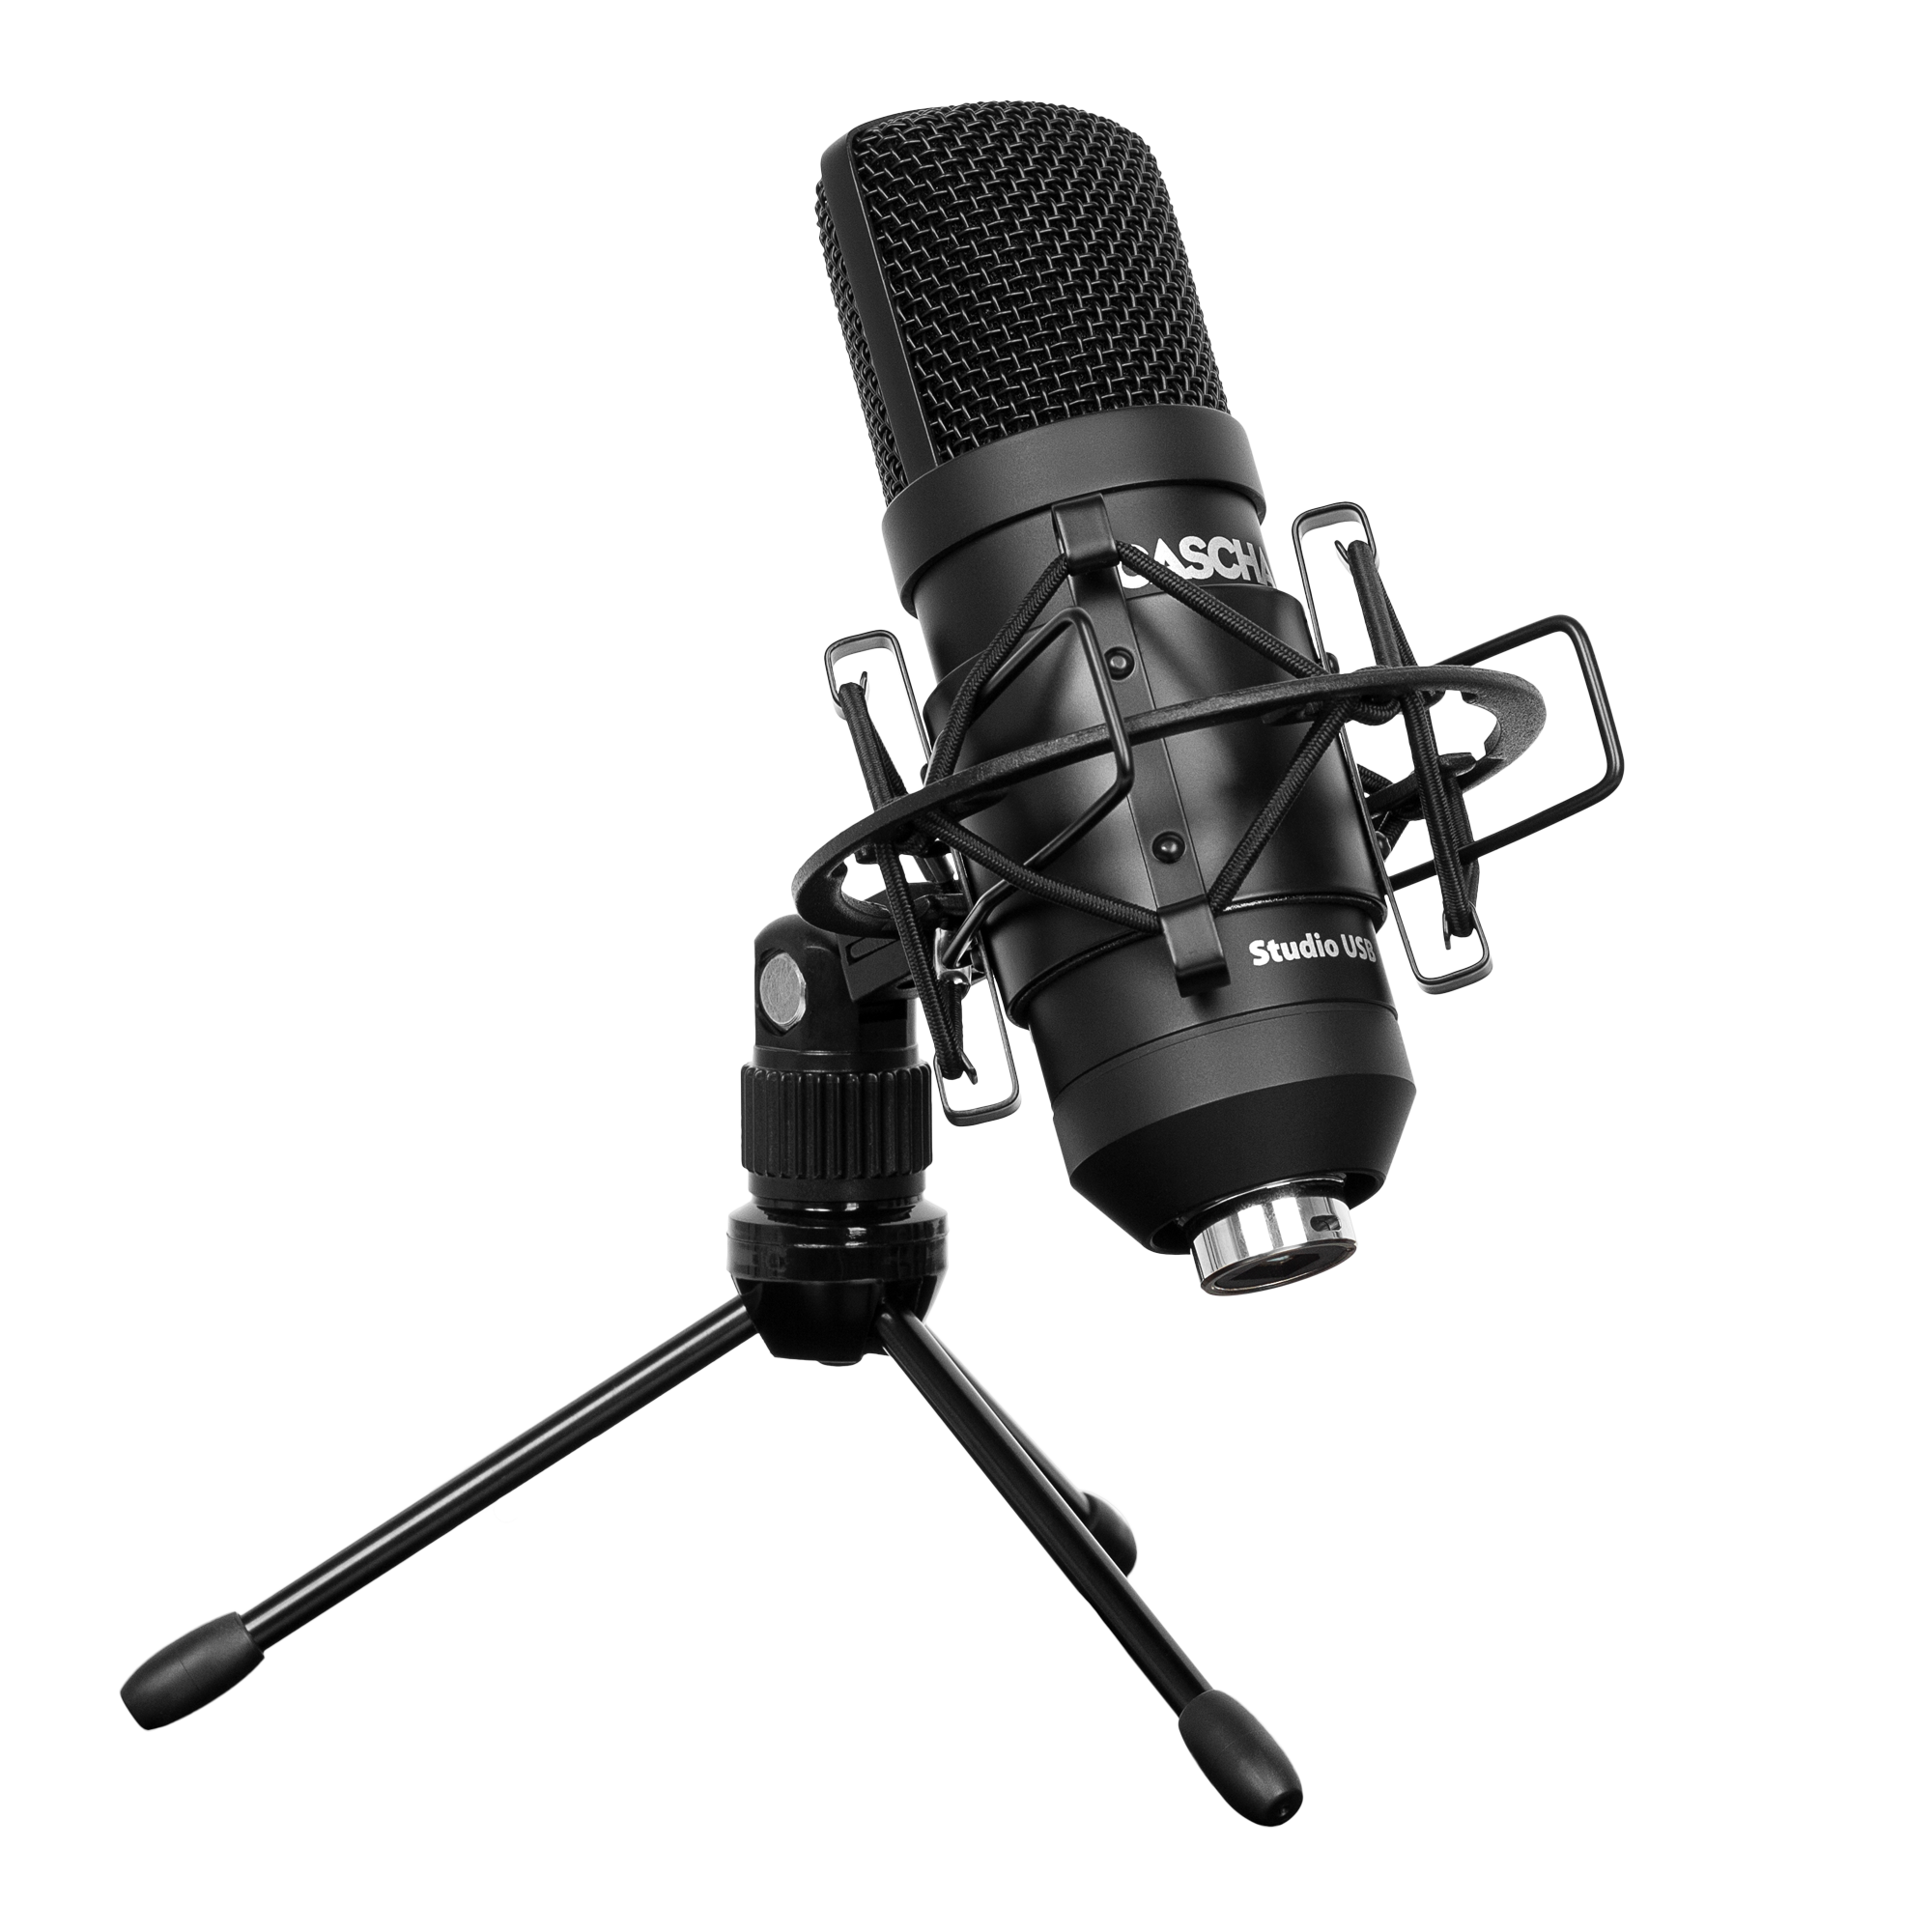 Studio USB Condenser Microphone Set